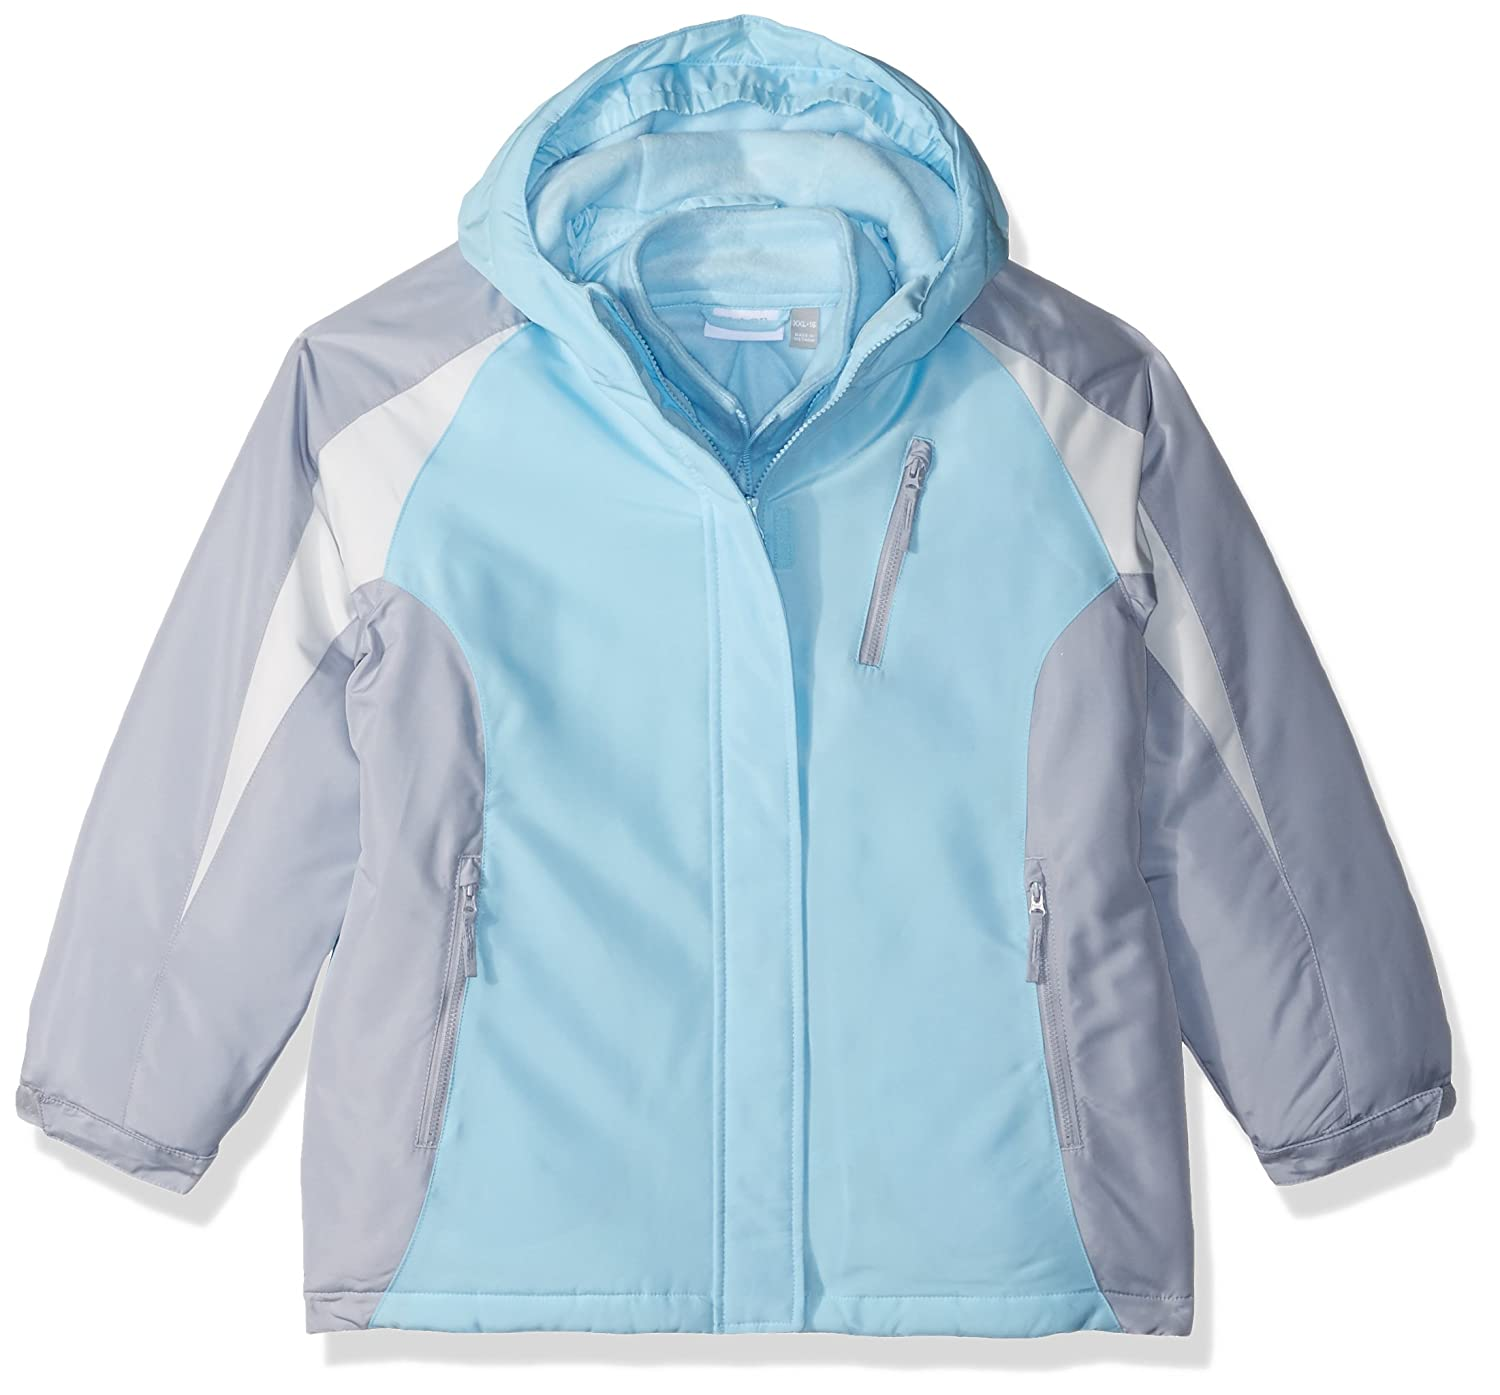 The Children's Place Girls' Big Solid 3-in-1 Jacket 2084947